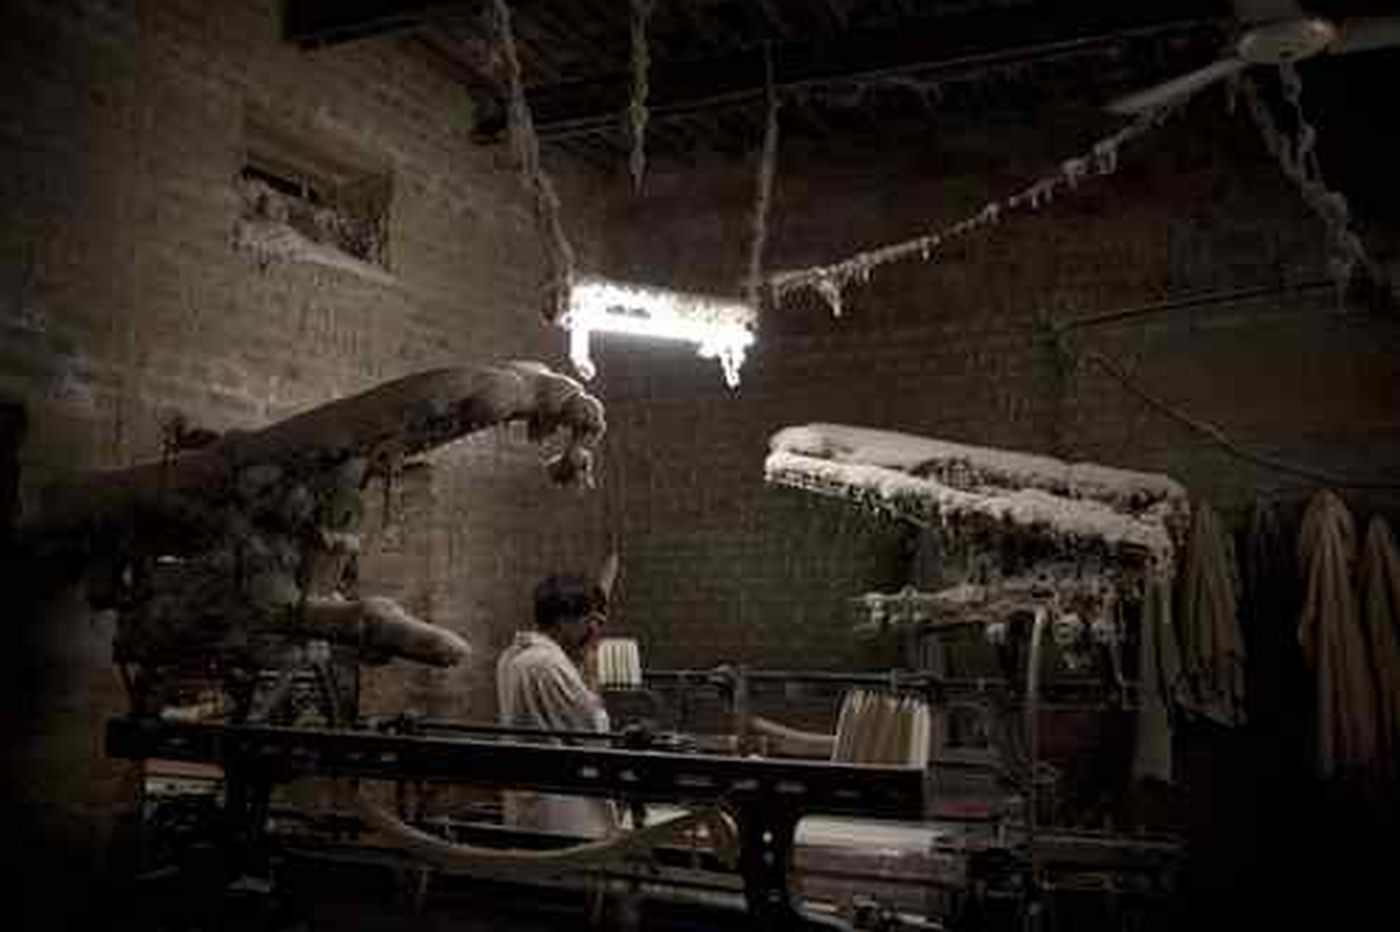 Outages in Pakistan risk empowering foes